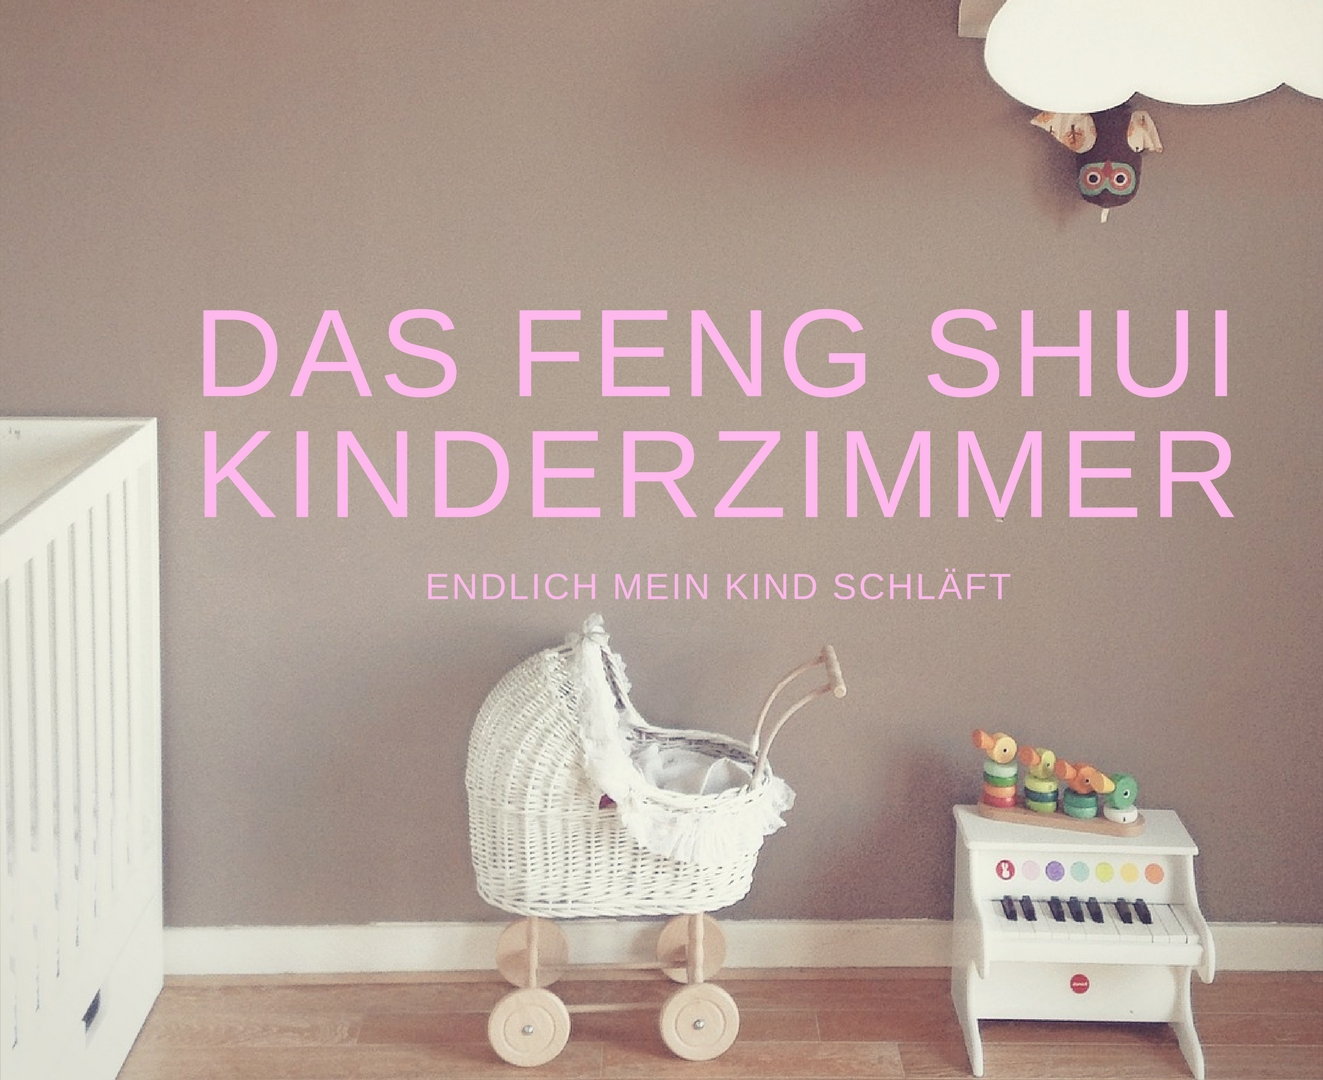 feng shui im kinderzimmer hilft bei schlafproblemen des kindes. Black Bedroom Furniture Sets. Home Design Ideas